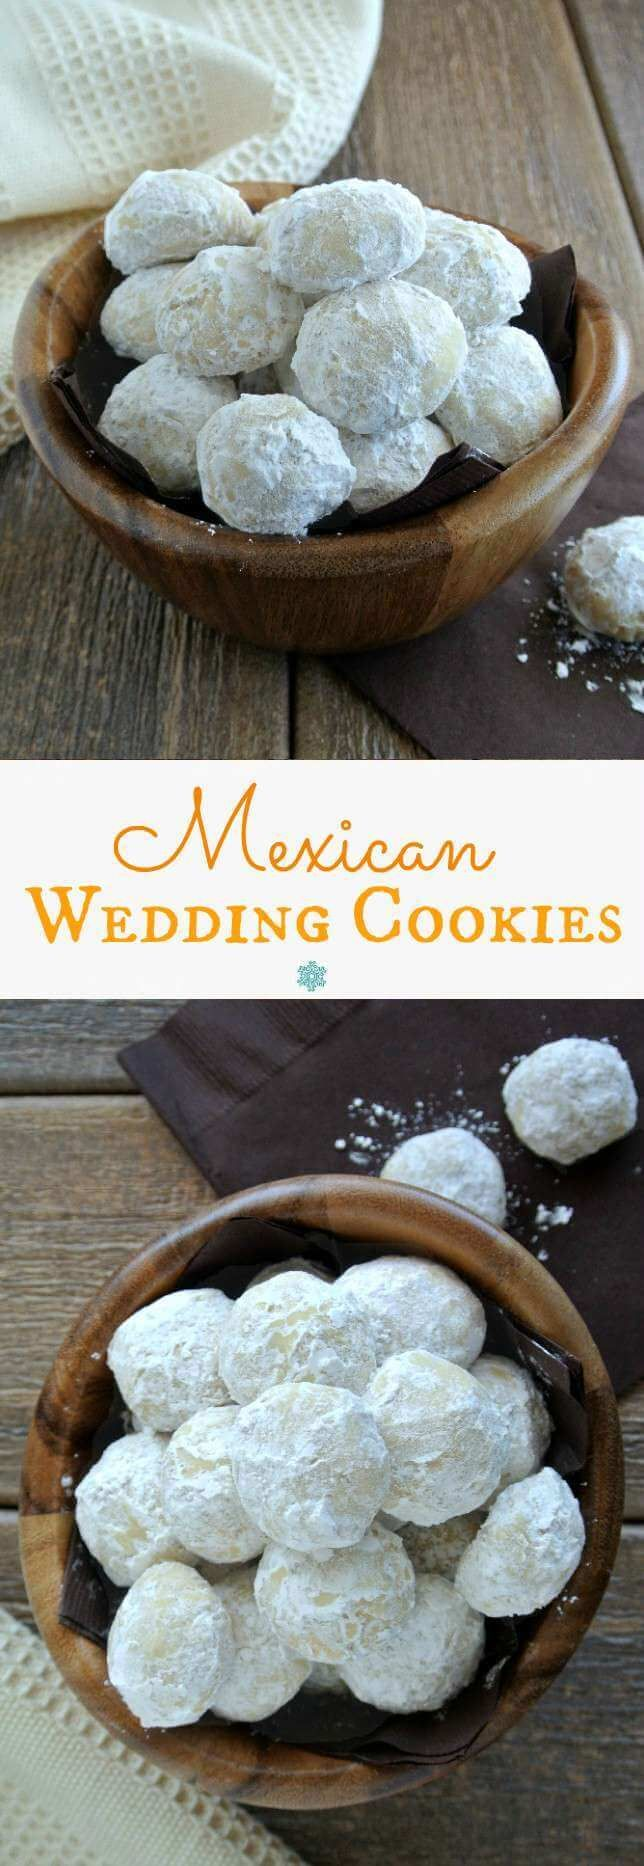 Mexican Wedding Cookies simplicity makes them accessible to everyone - right out of their own oven. Fresh, lightly crunchy and ready to pop in your mouth.